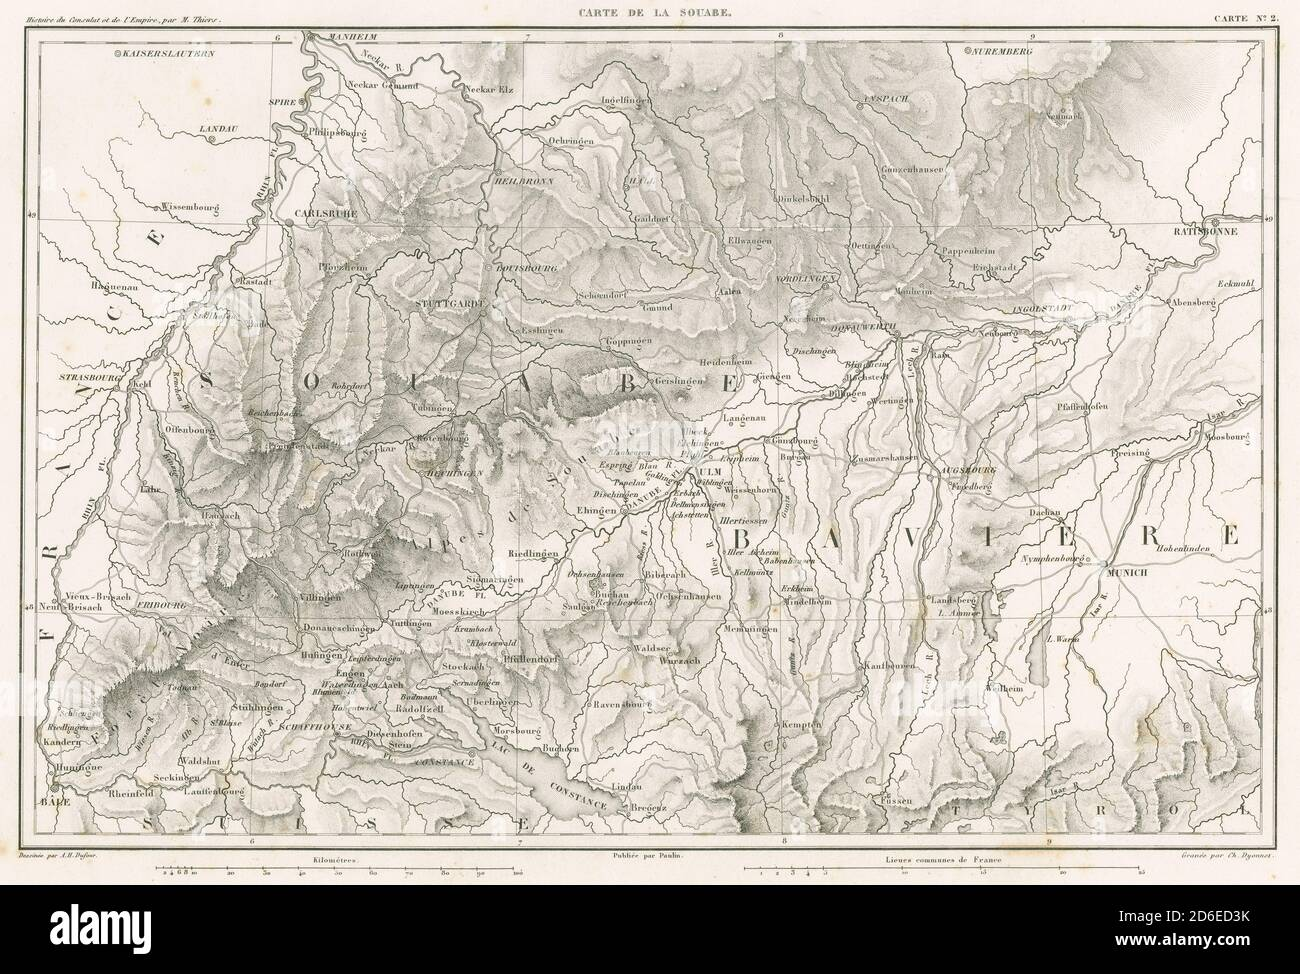 Antique 1859 Engraved French Map Carte De La Souabe The Souabe In German Schwaben Is A Historical Region In The Southwest Of Germany Source Original Engraving Stock Photo Alamy